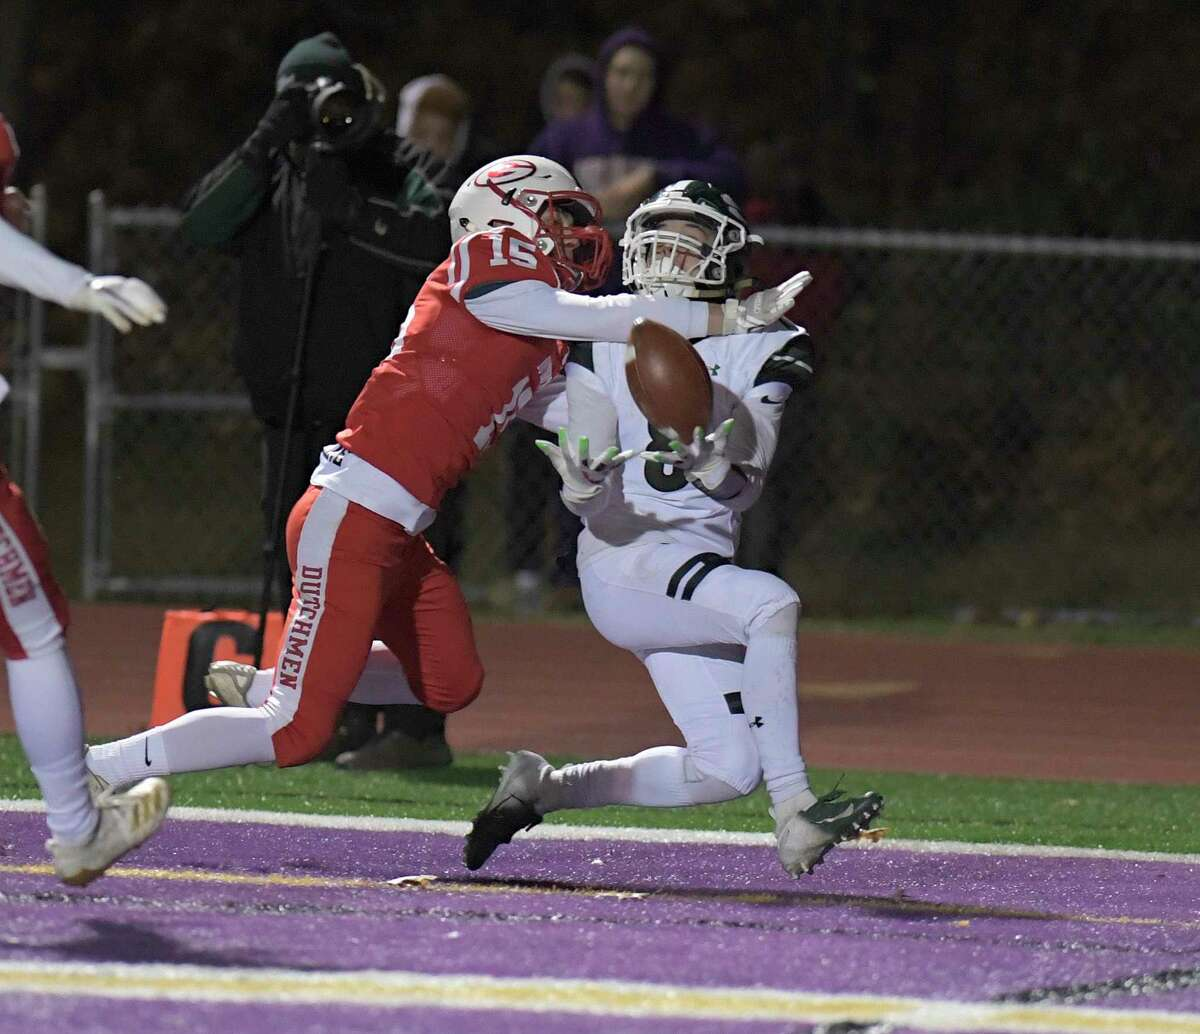 Shendehowa's Joshua Szwarcberg (8) catches a pass for a touchdown in front of Guilderland's Devon Mcclaine (15) during a Section II Class AA high school Super Bowl football game Friday, November 8, 2019, in Troy, N.Y. Shenendehowa won the game. 35-7. (Hans Pennink / Special to the Times Union)